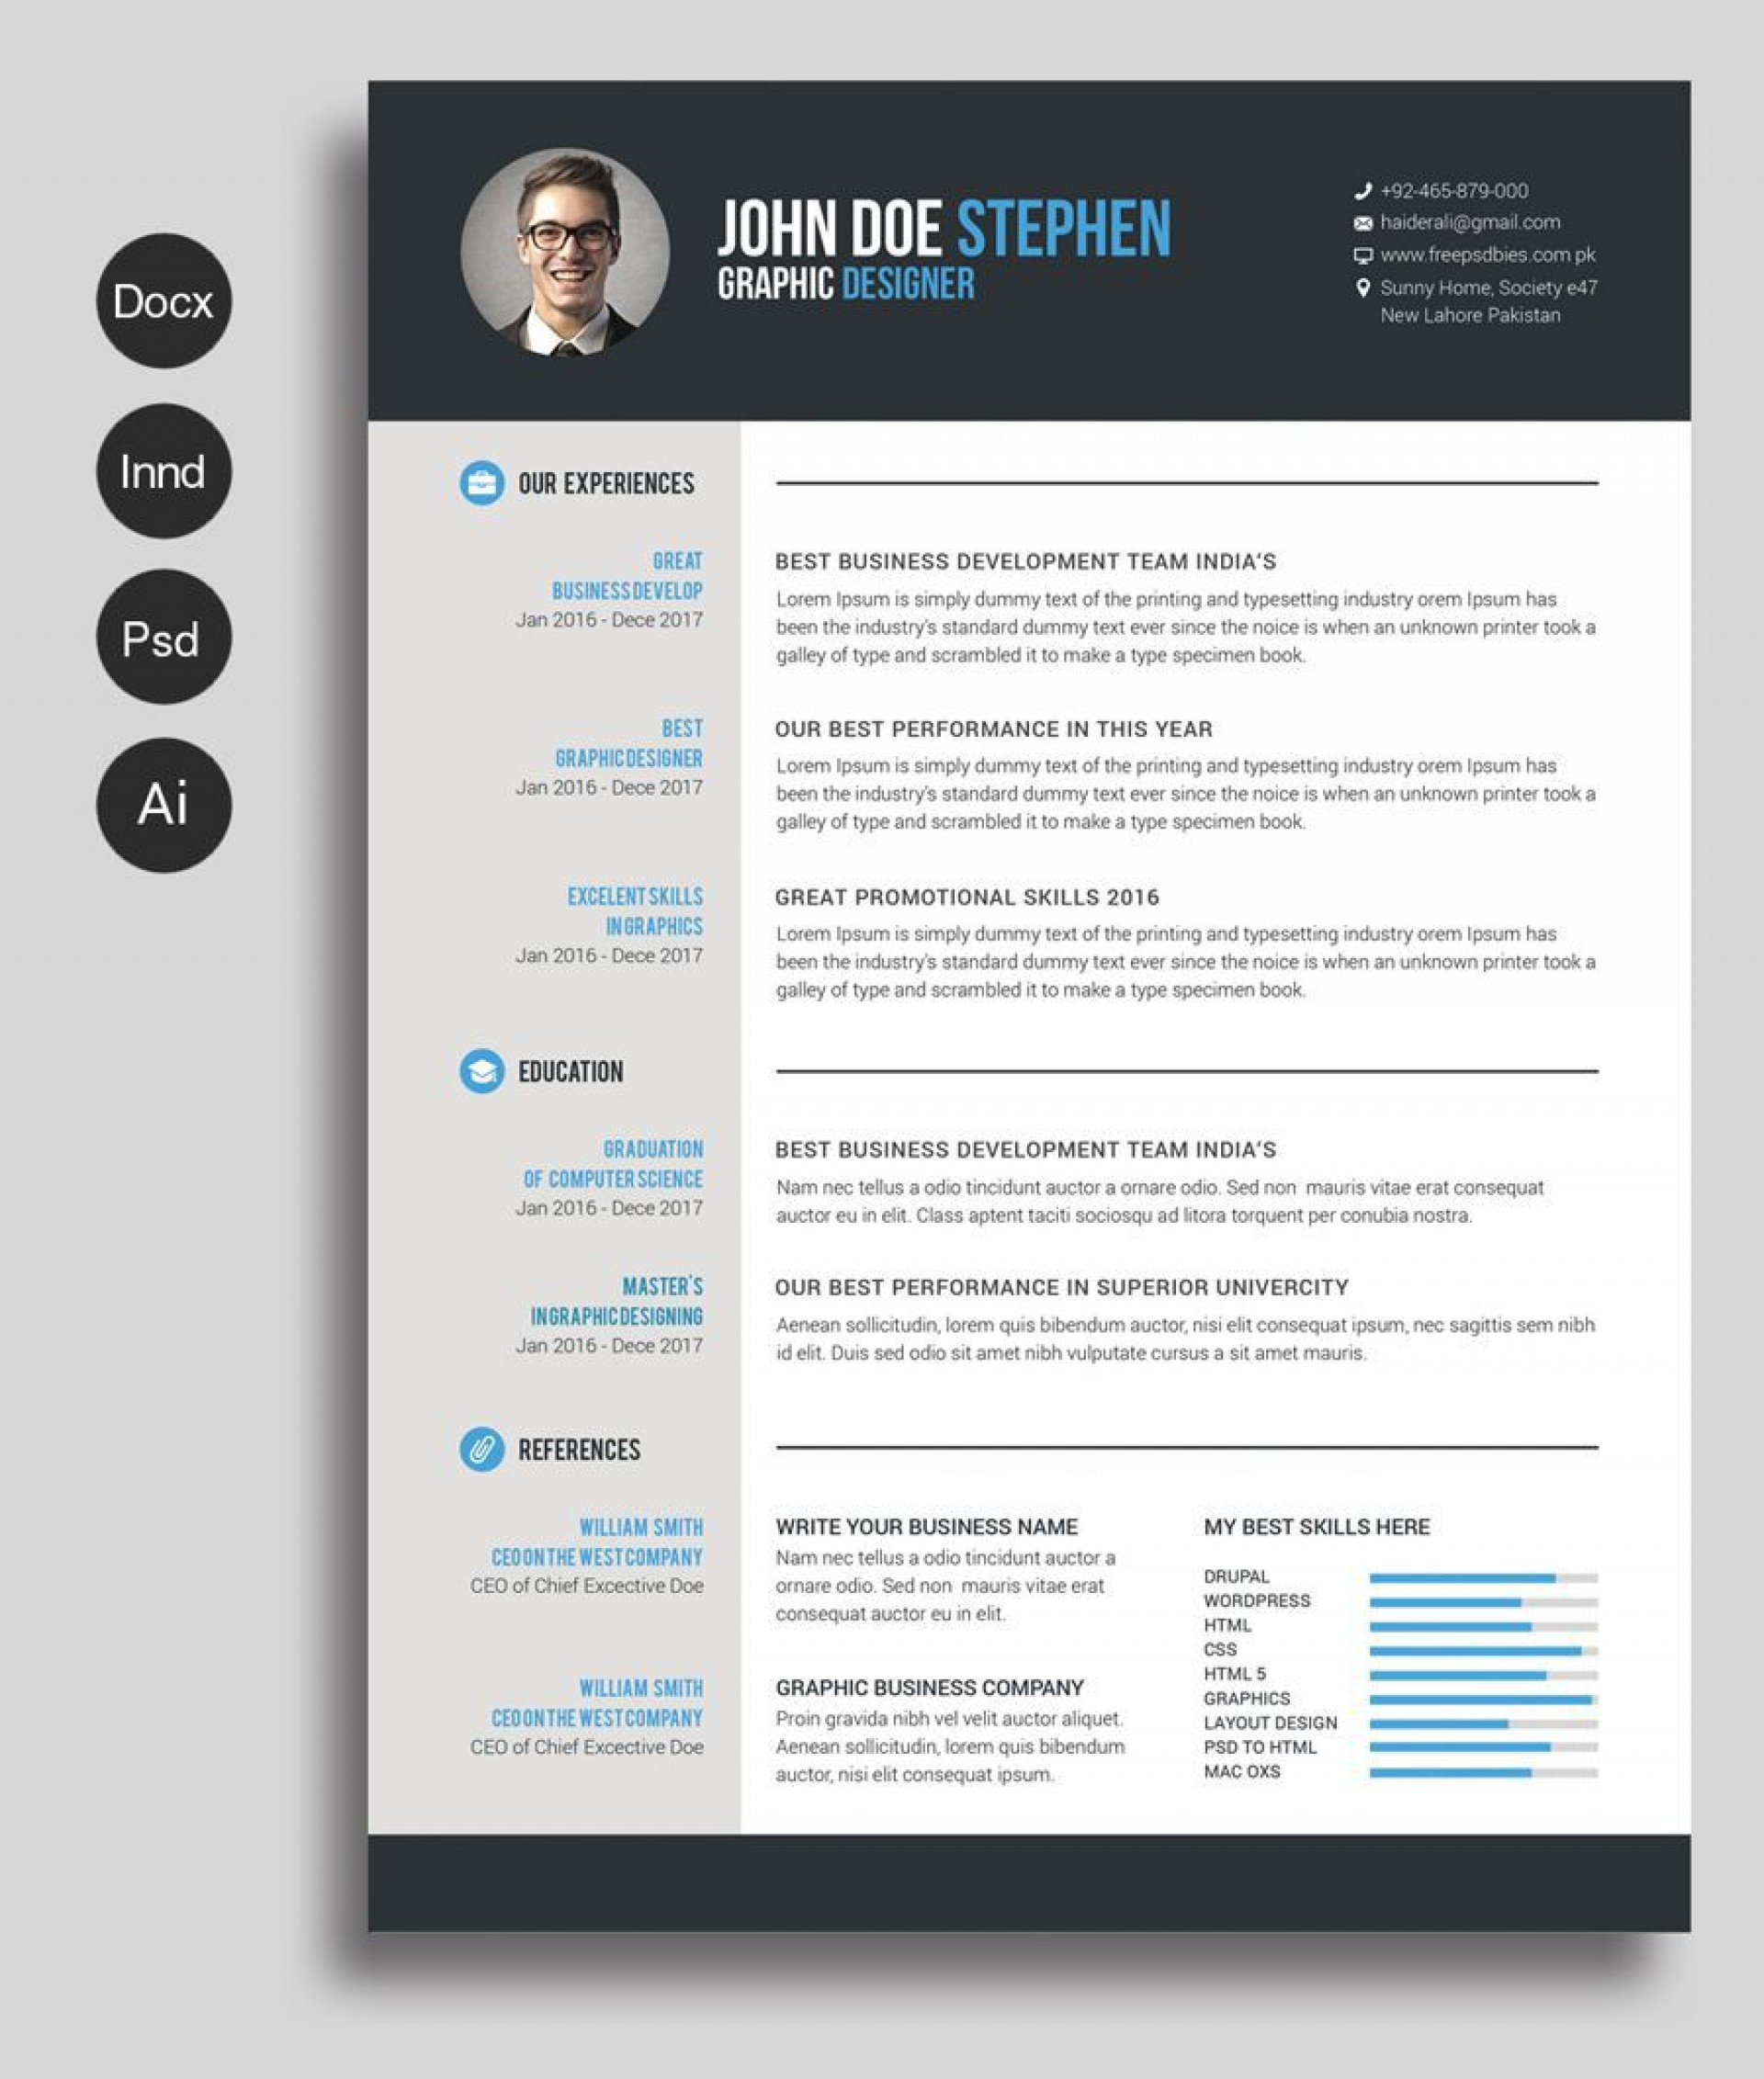 000 Wondrou Resume Template Word Free Picture  Download India 20201920